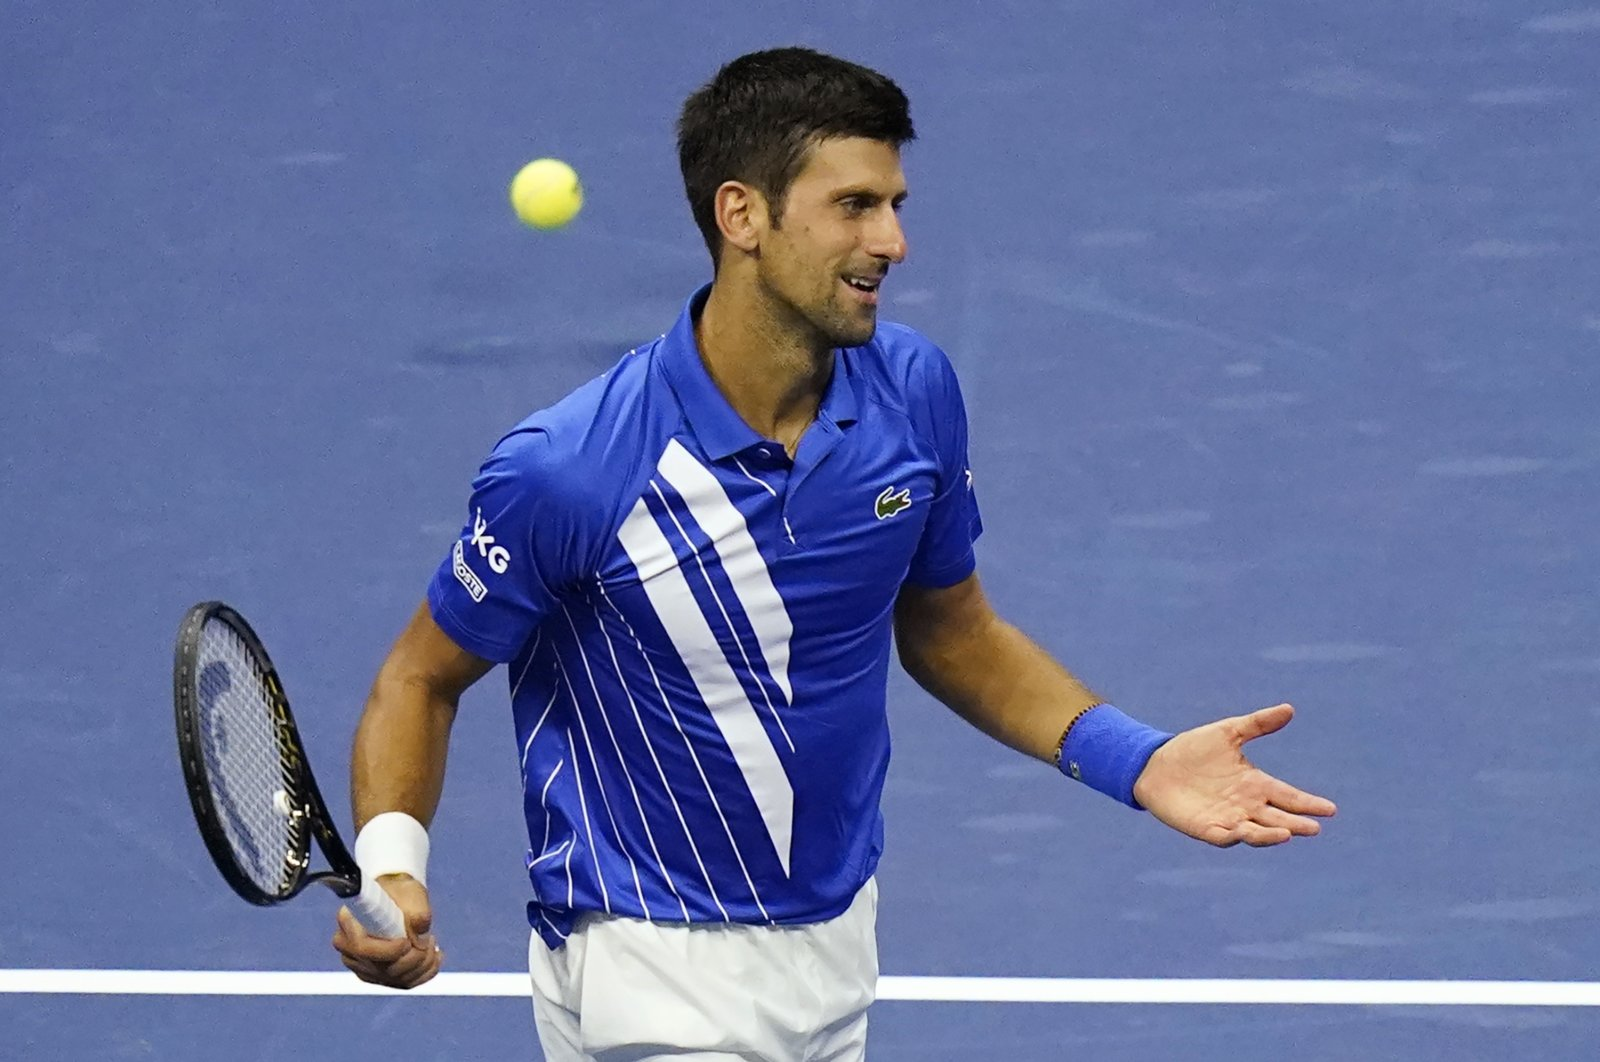 Novak Djokovic, of Serbia, reacts to missing a point to Jan-Lennard Struff, of Germany, during the third round of the U.S. Open tennis championships, Friday, Sept. 4, 2020, in New York. (AP Photo)